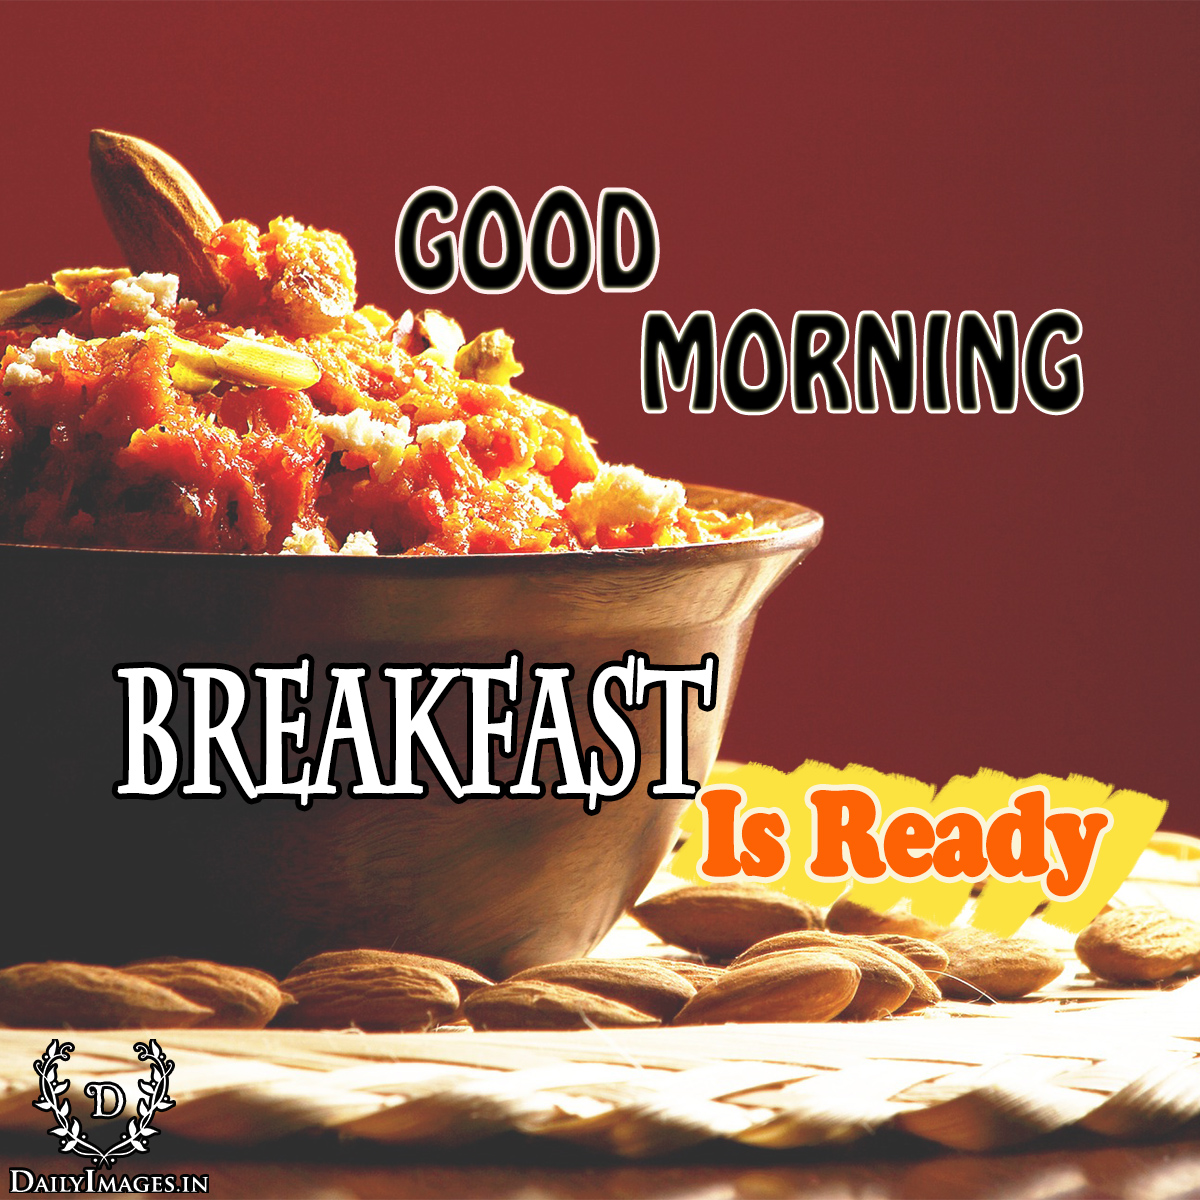 Good Morning Quotes With Fruits: Good Morning....Breakfast Is Ready.